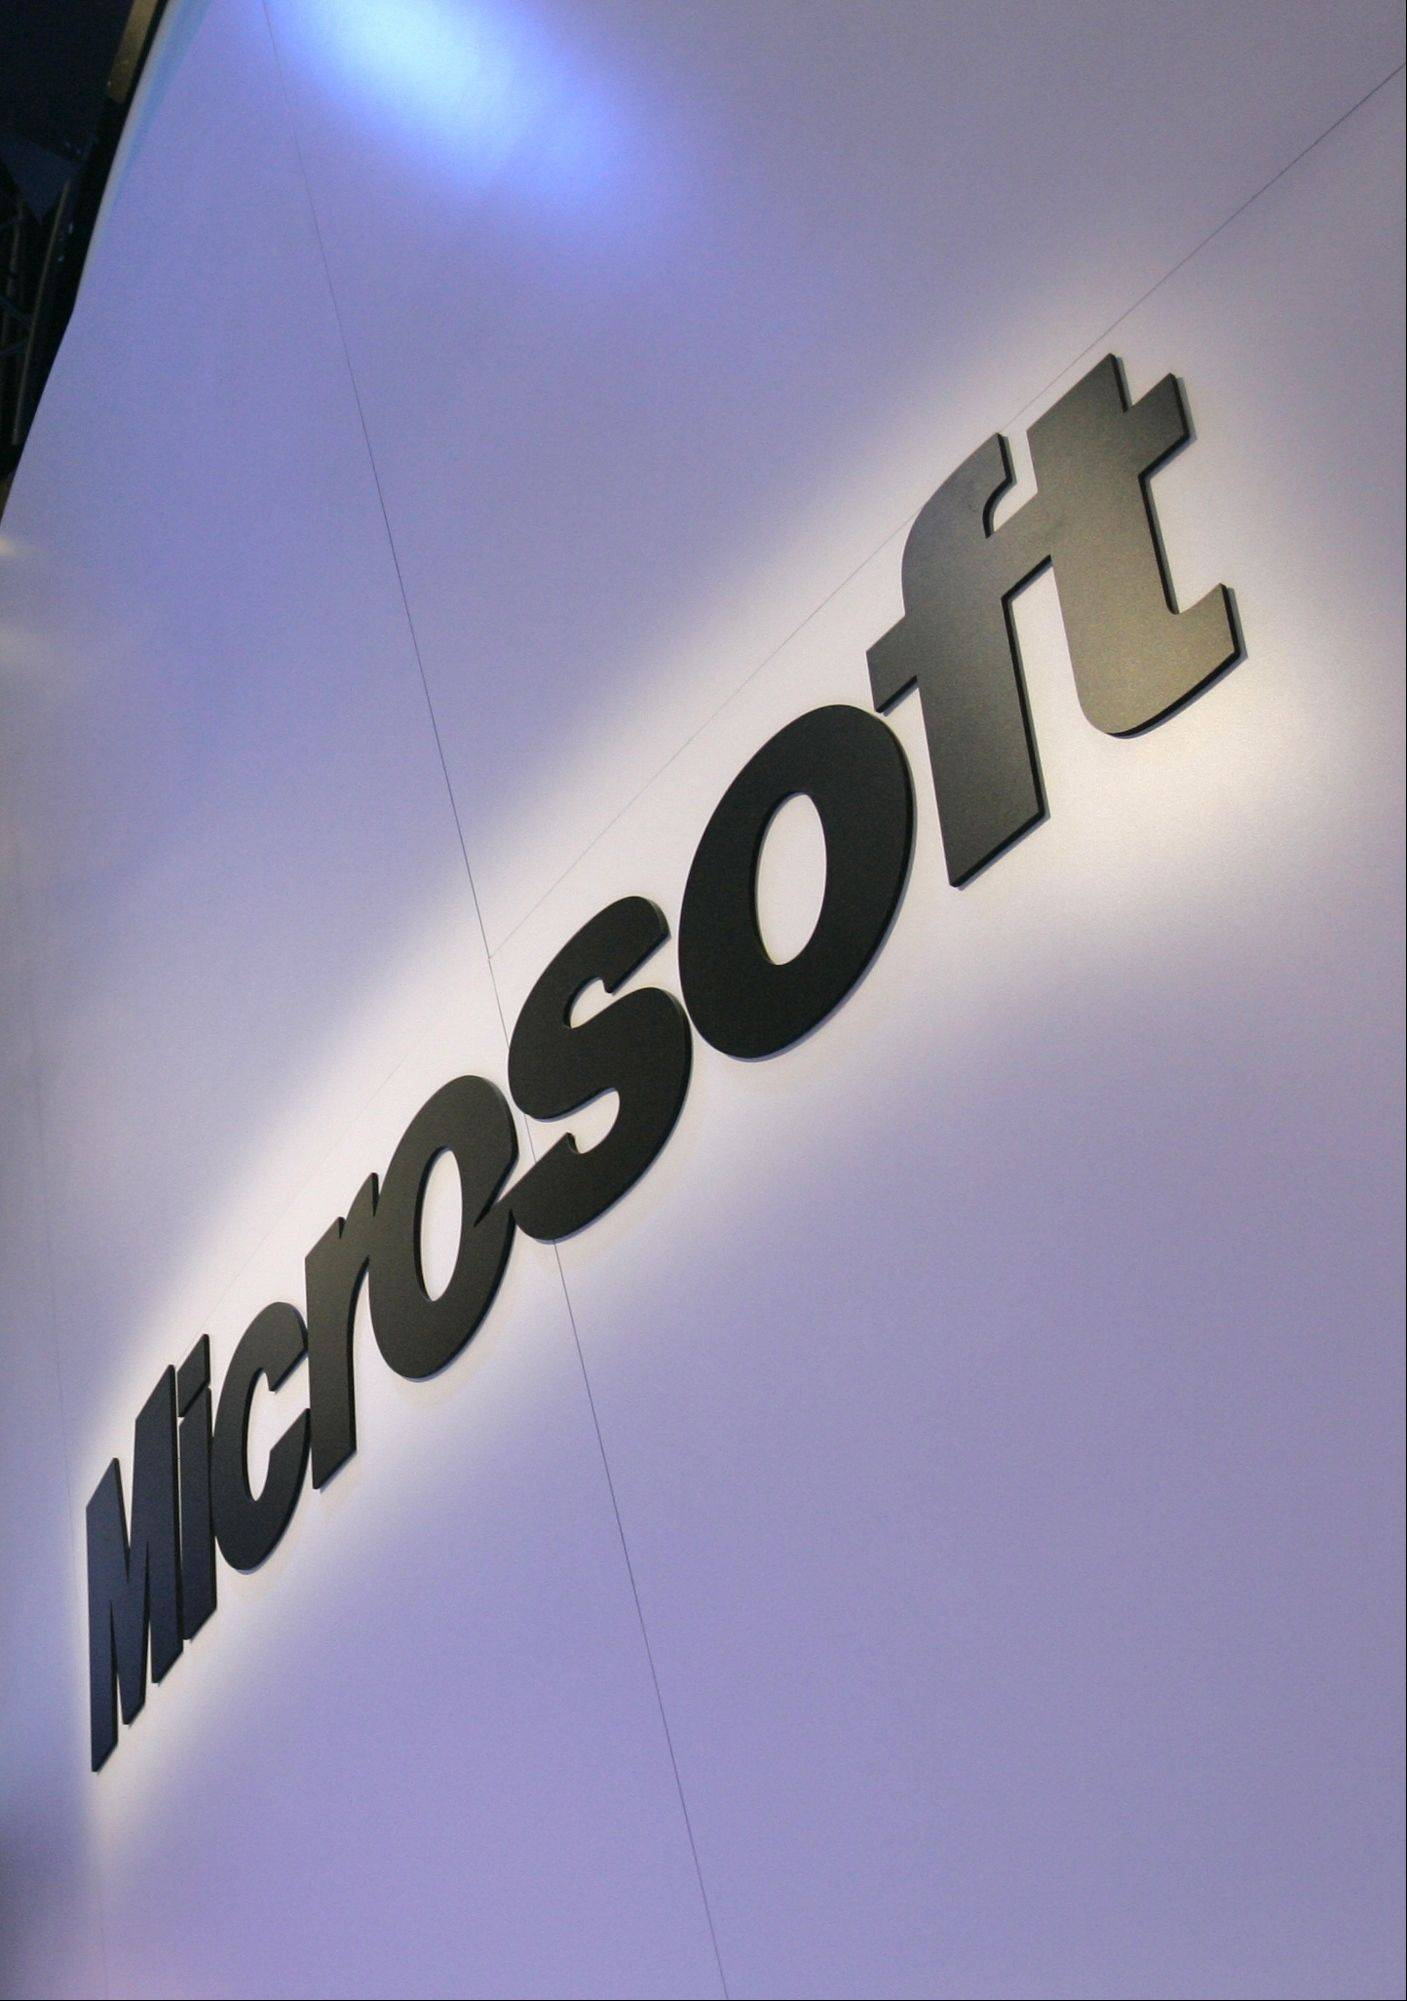 Microsoft is making a clean break with hotmail and launching a new email service -- Outlook -- that could challenge Gmail.